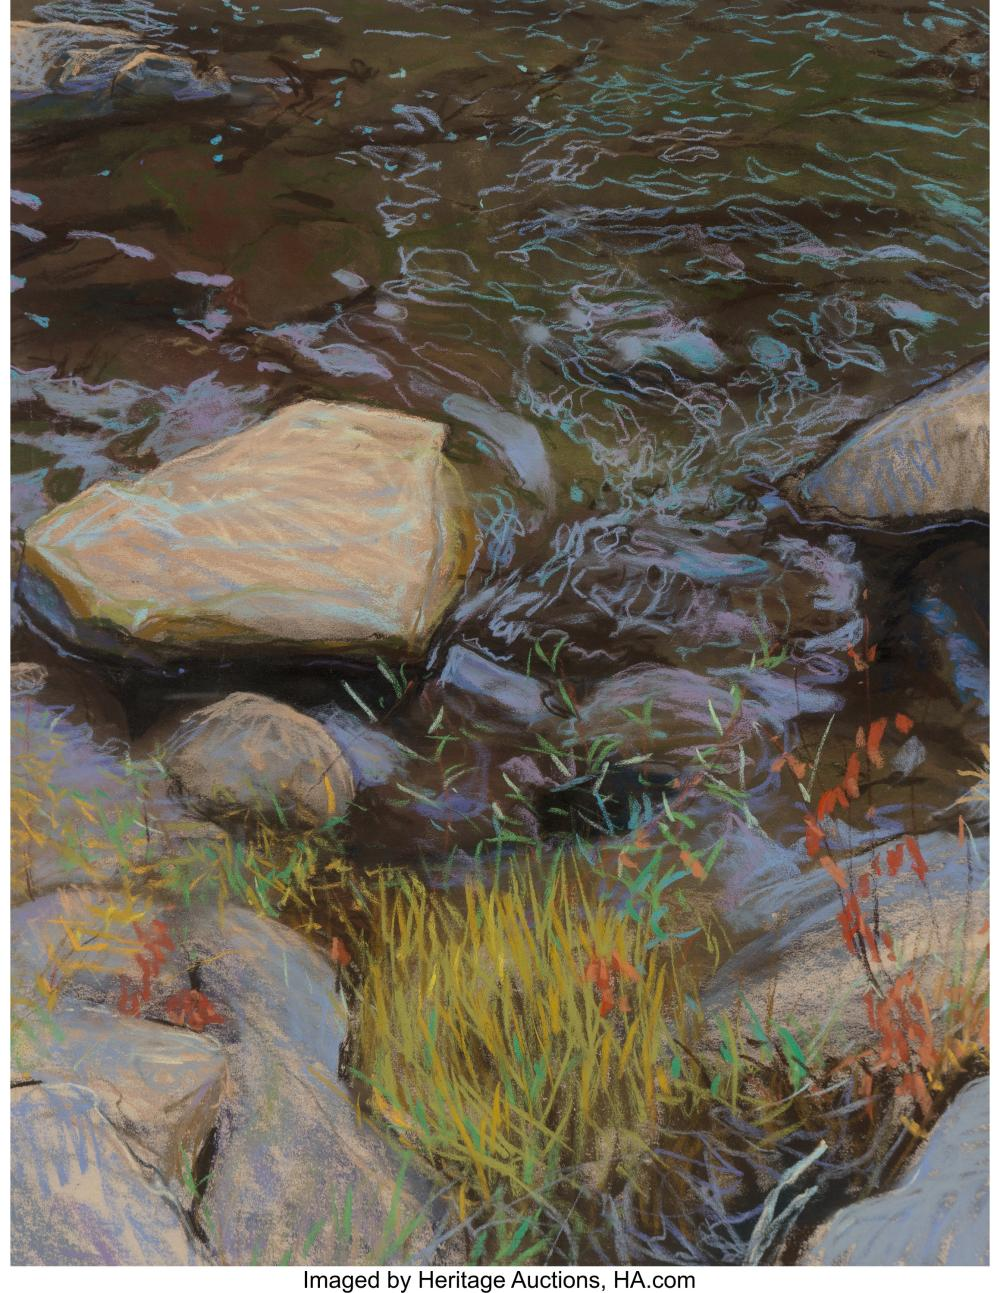 Kitty Wallis (American, b. 1938) Yuba River Pastel on paper 26-1/4 x 20-1/4 inch